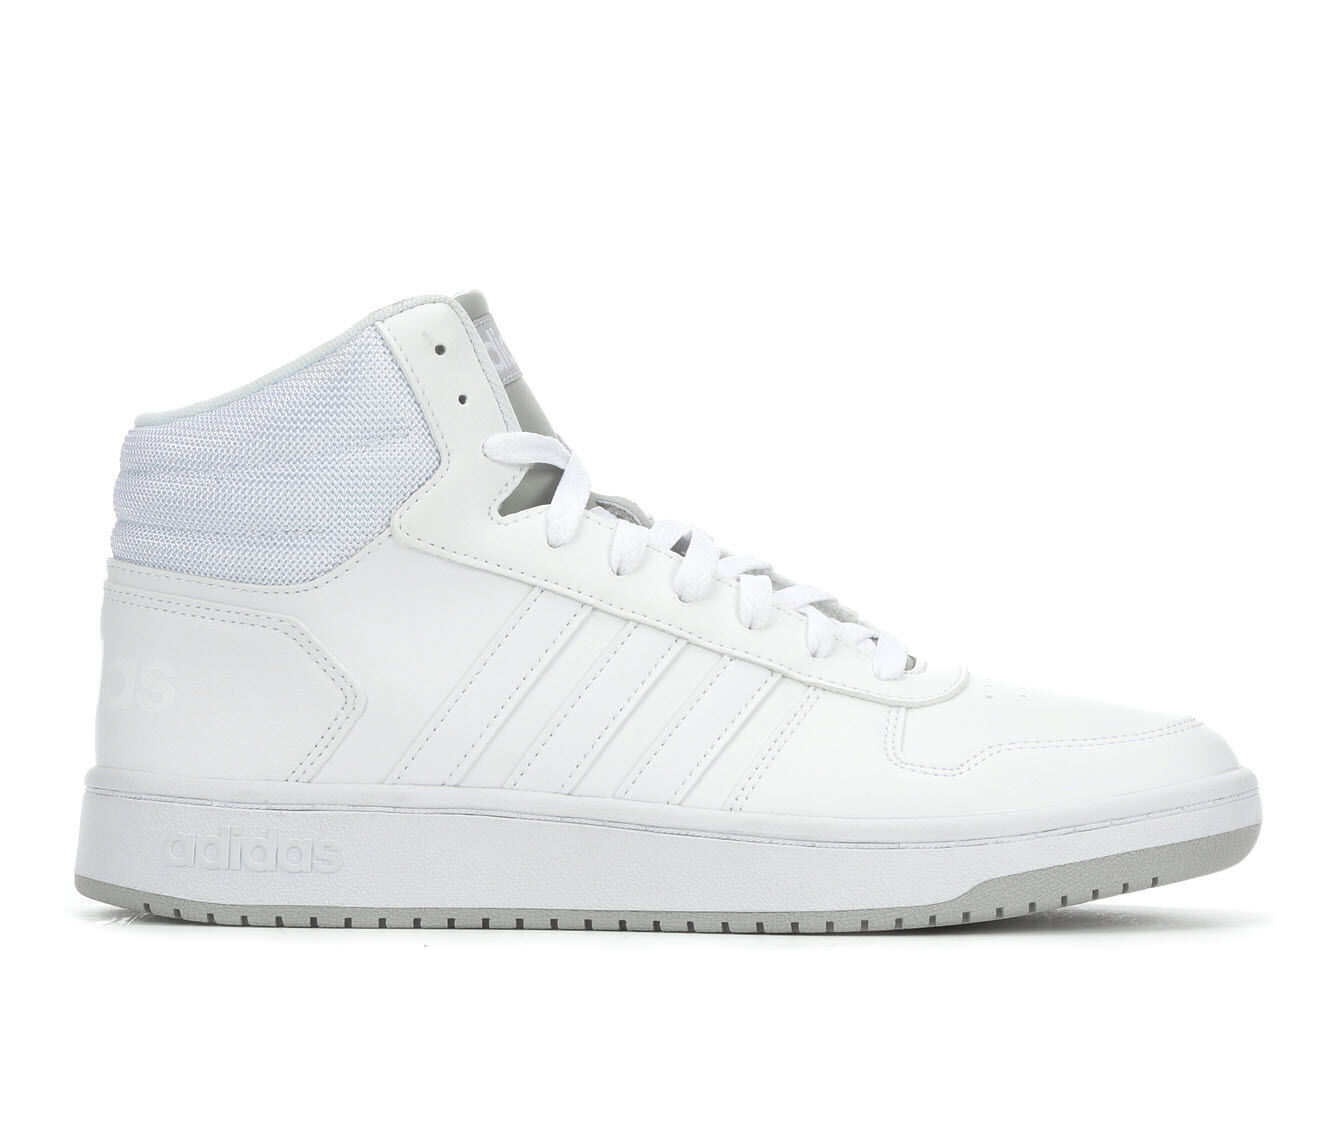 latest style Men's Adidas Hoops 2.0 Mid Retro Sneakers Wht/Wht/Gry